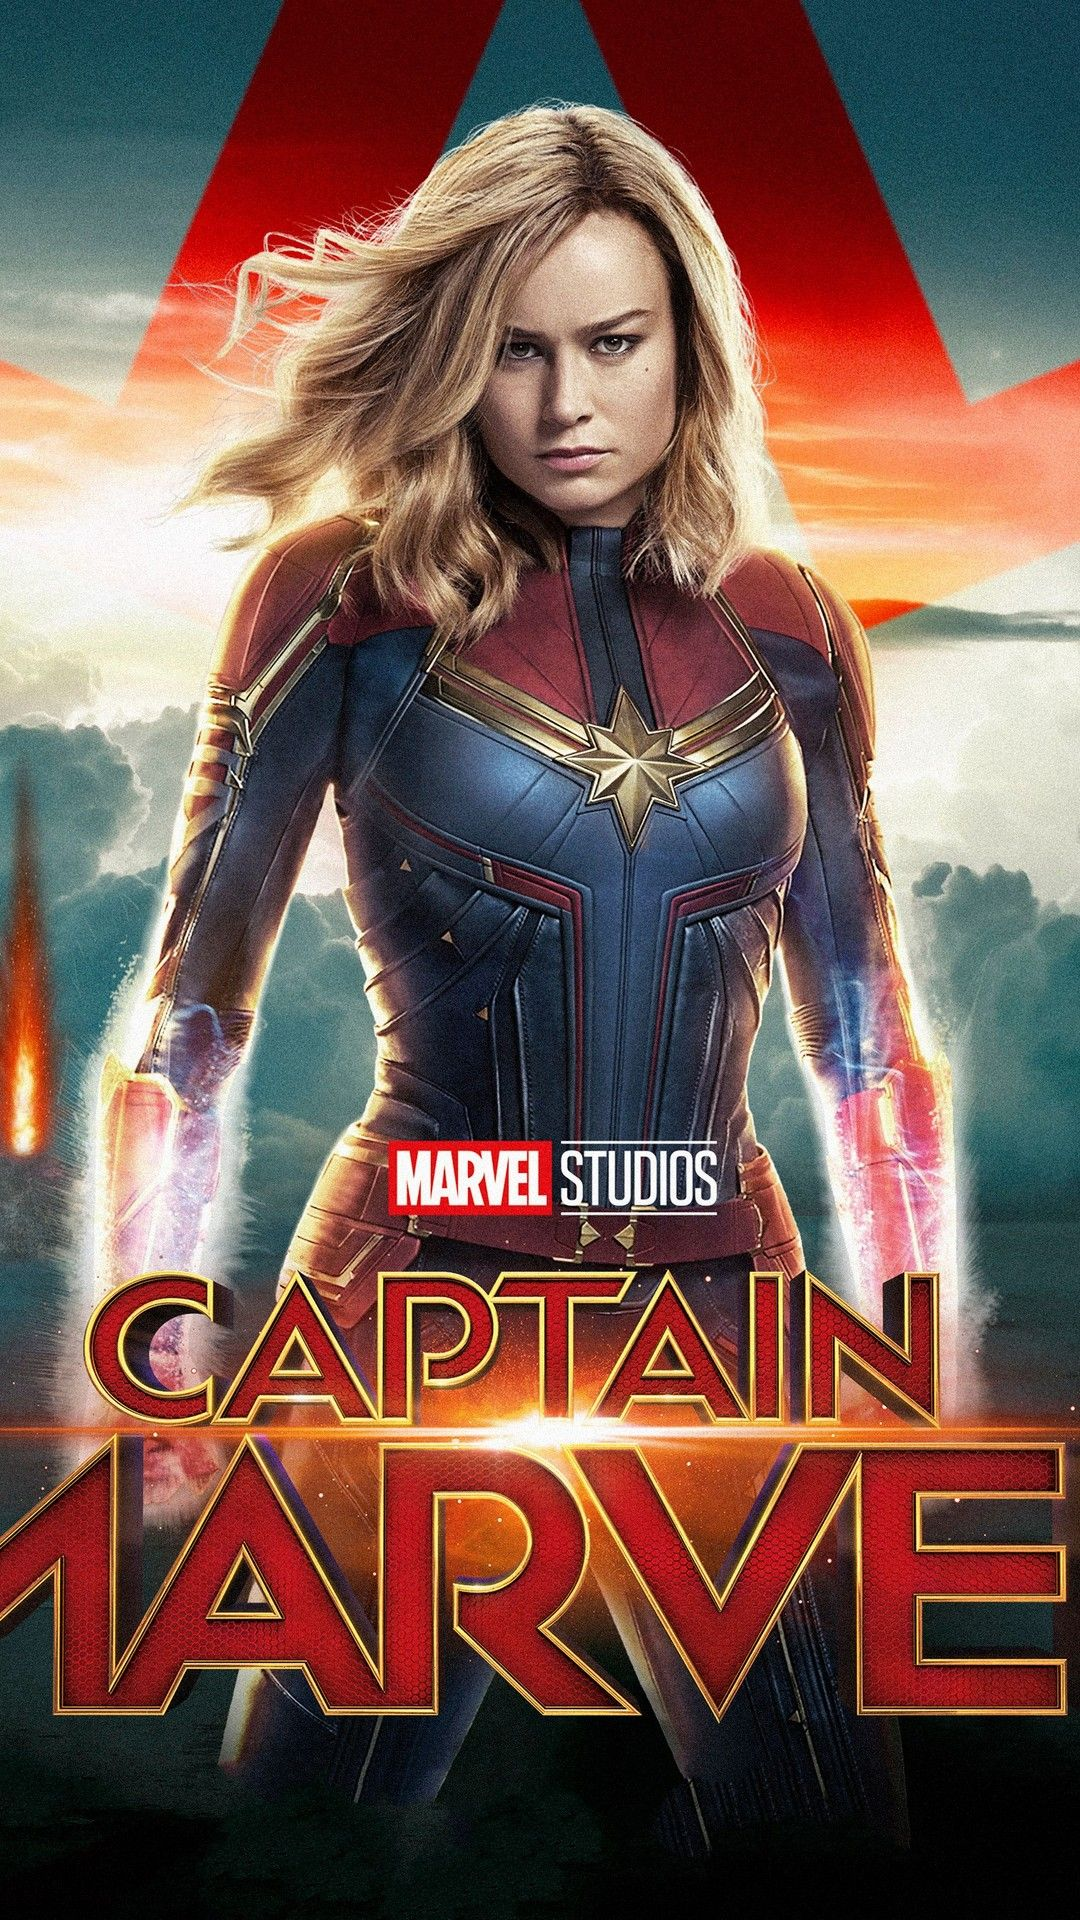 Captain Marvel Wallpaper For Mobile With Images Captain Marvel Marvel Heroines Marvel Wallpaper